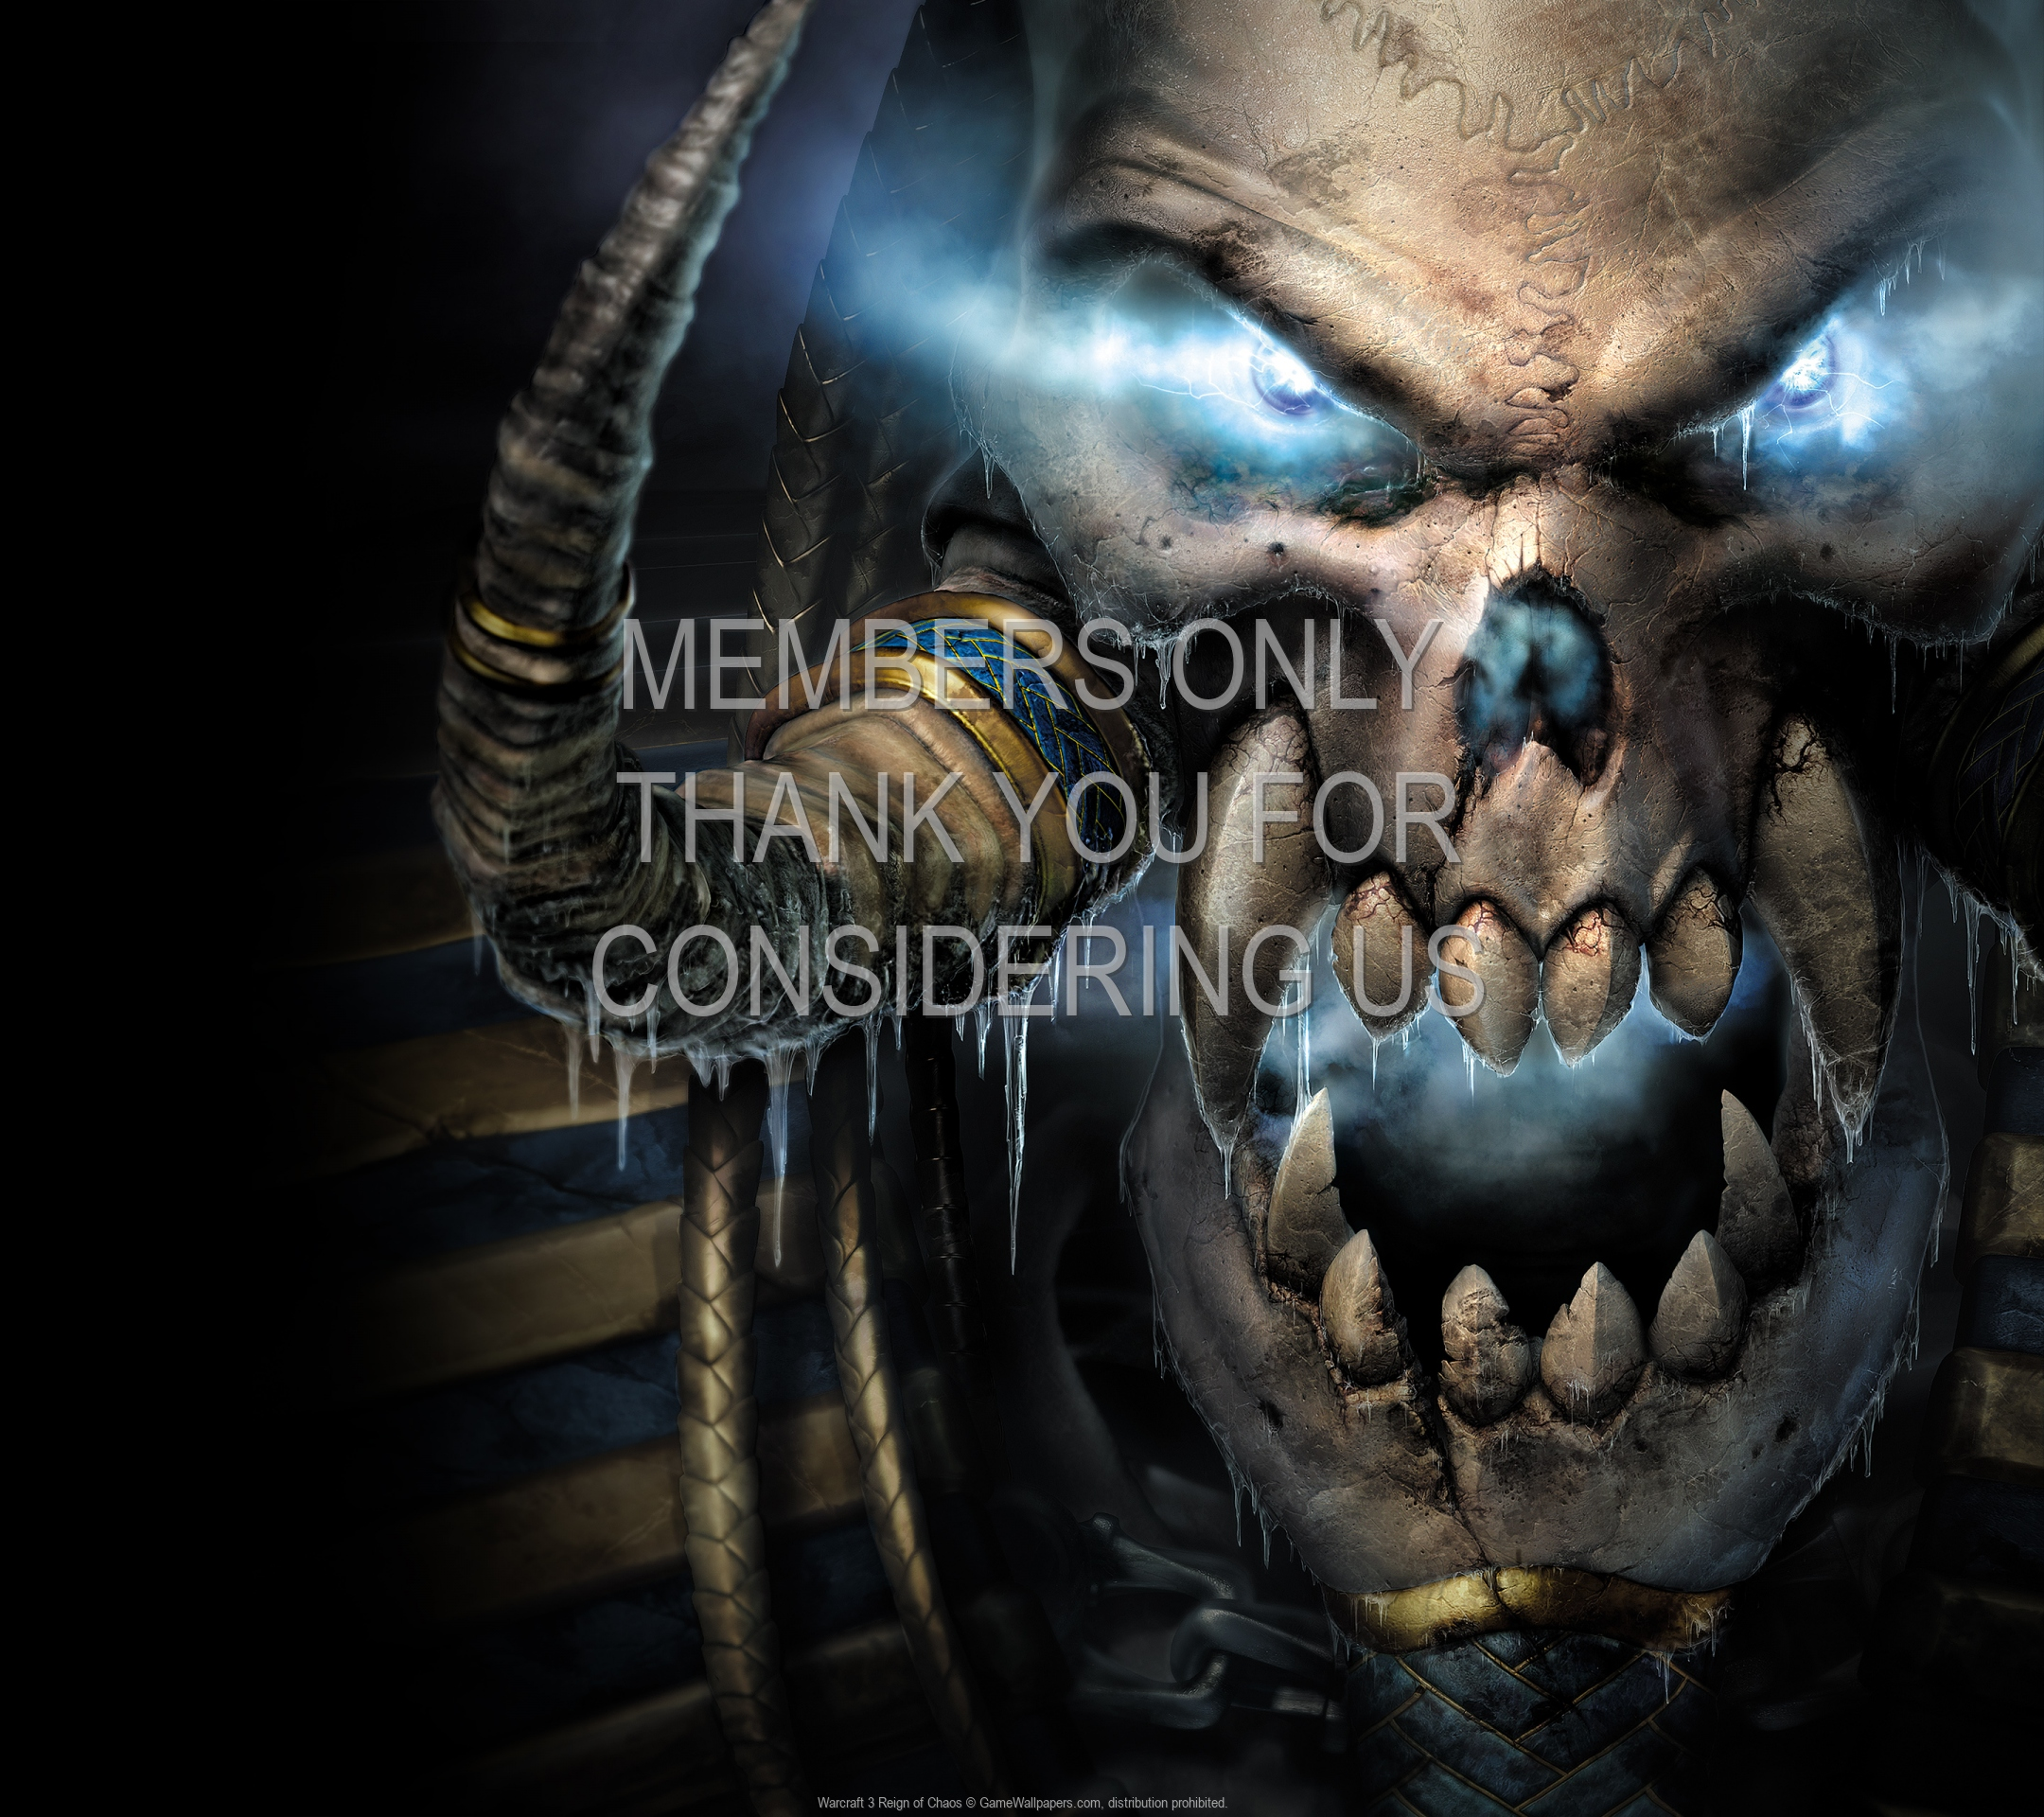 Warcraft 3: Reign of Chaos 1920x1080 Handy Hintergrundbild 26